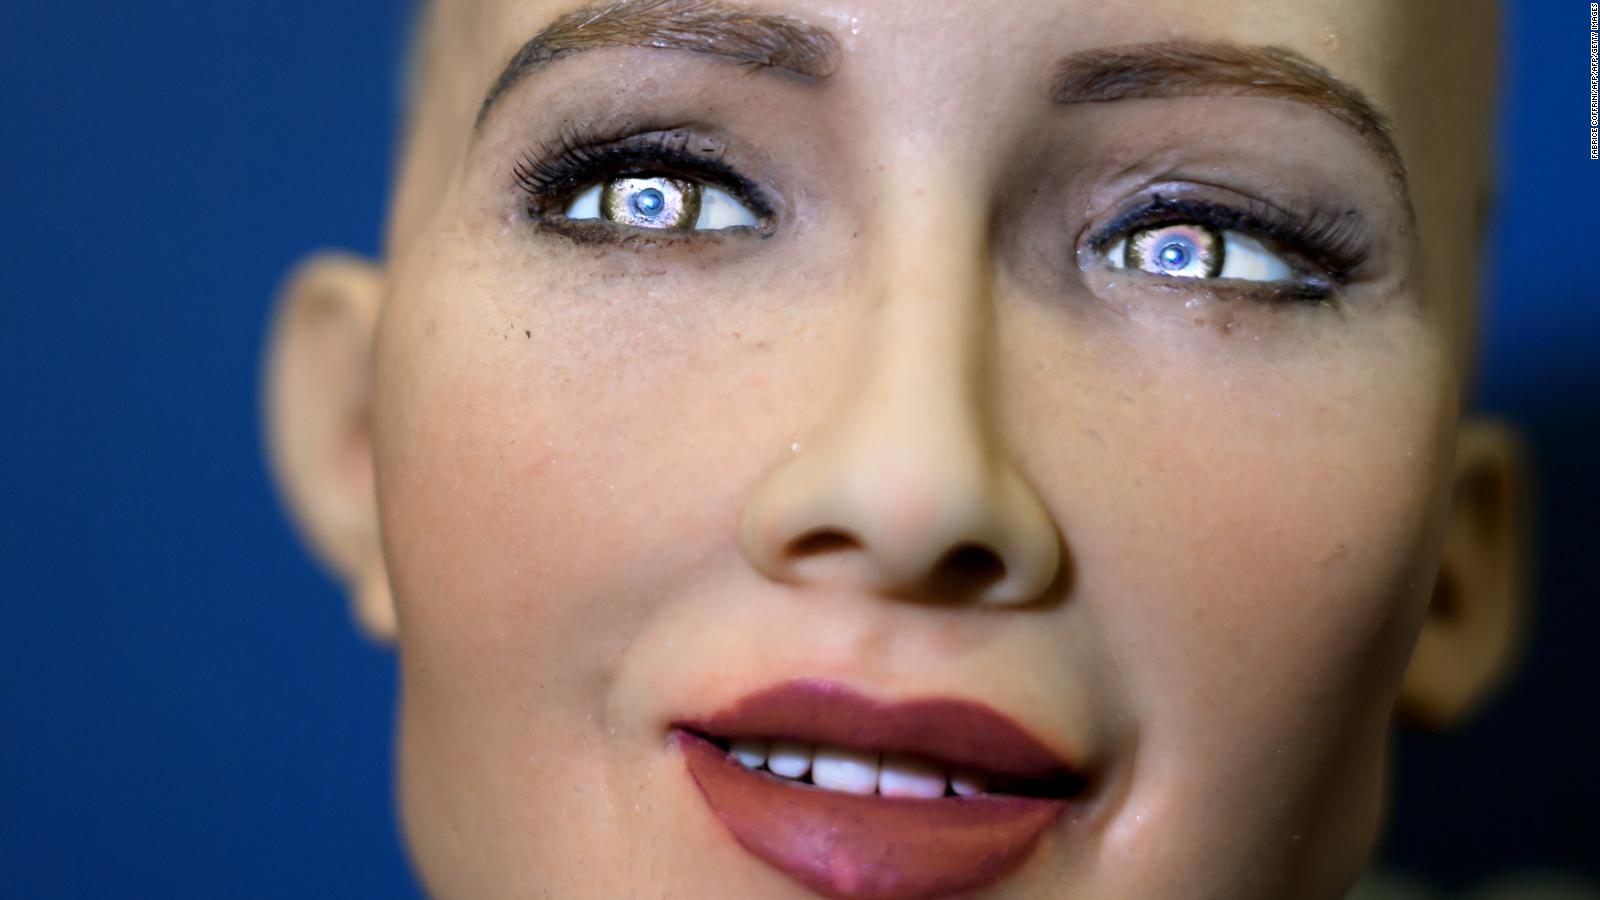 Baby Porn Tumblr meet sophia: the robot who smiles and frowns just like us